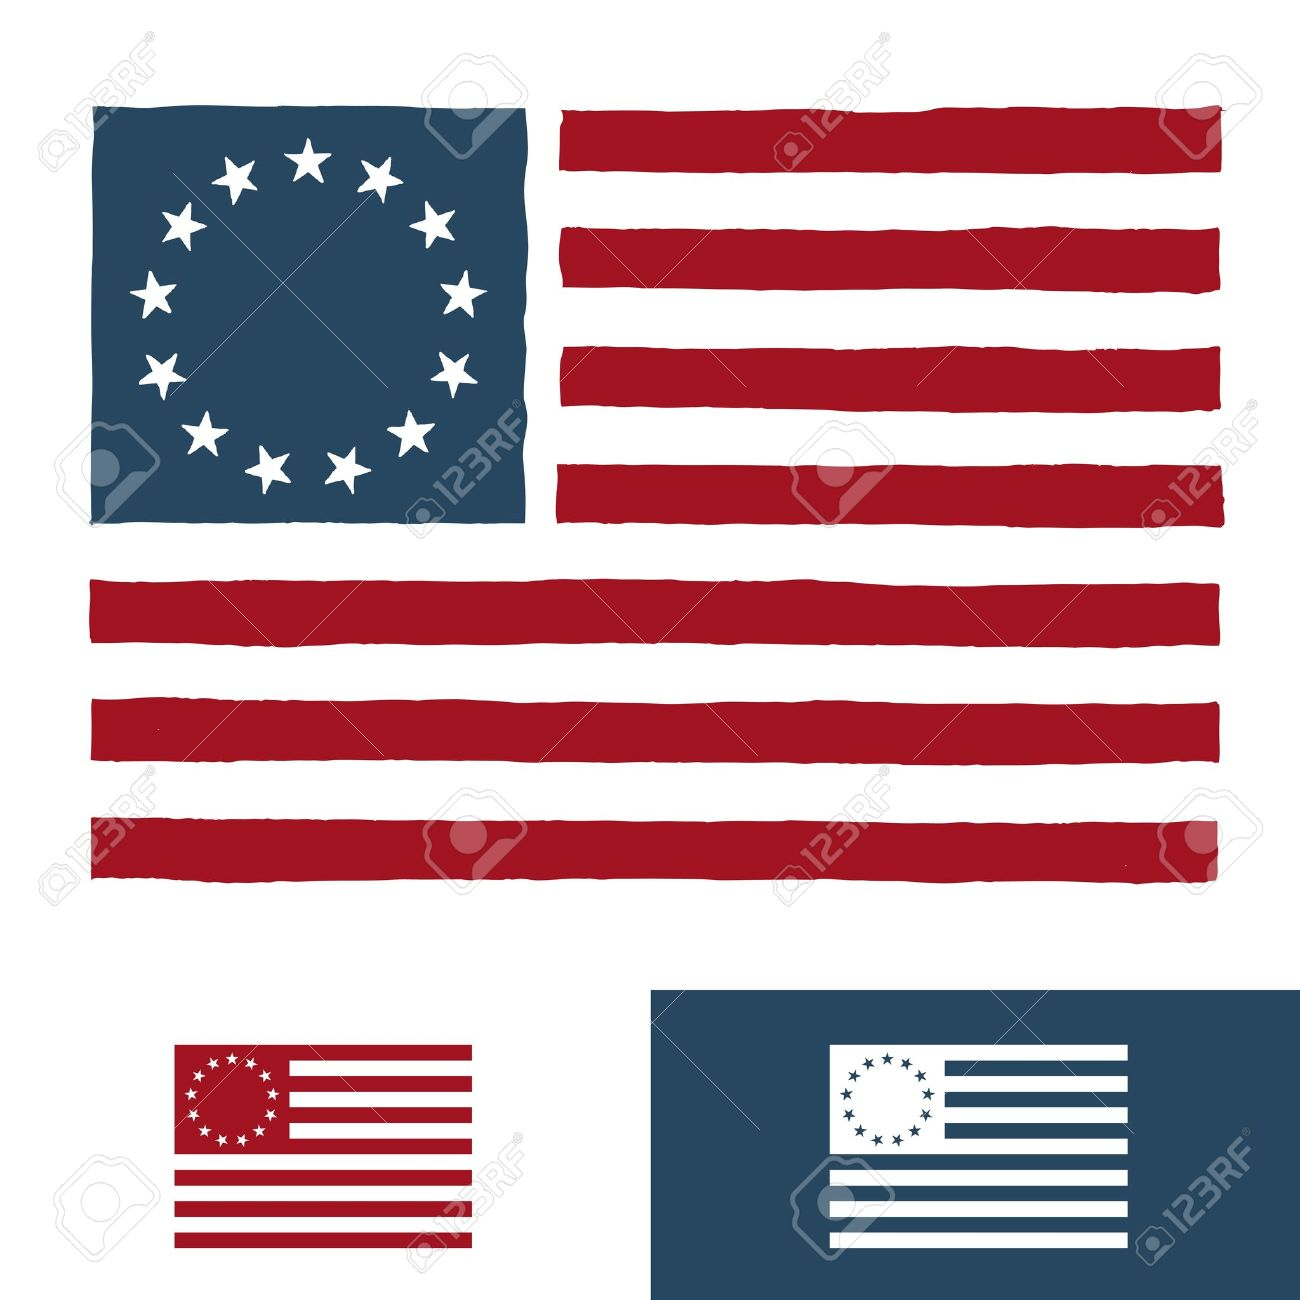 Original vintage american flag design with 13 stars royalty free original vintage american flag design with 13 stars stock vector 13829018 publicscrutiny Image collections